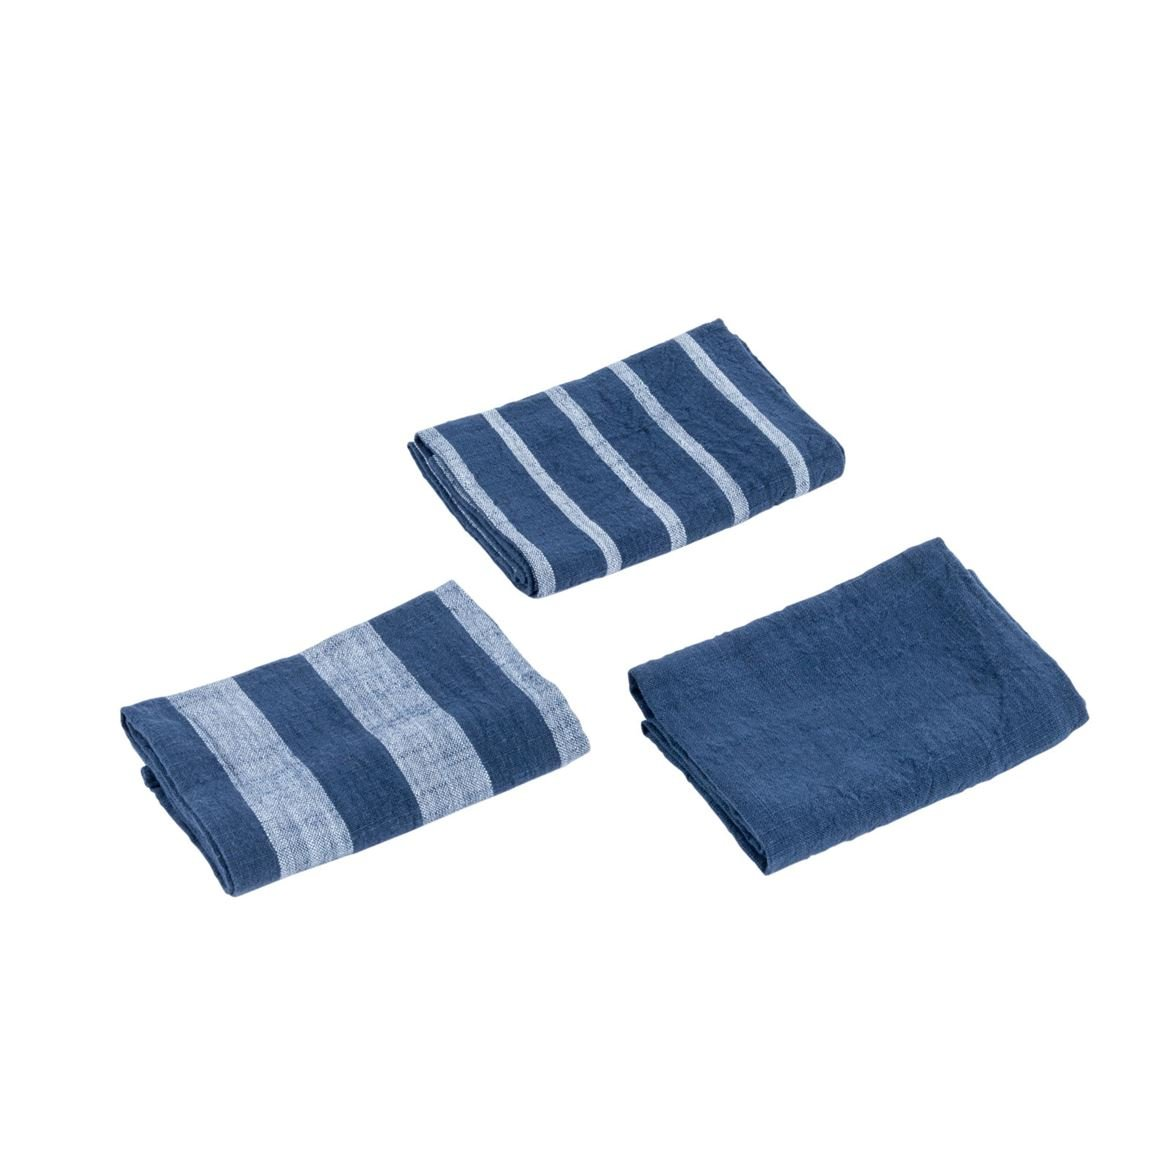 SCOTTY Torchon set de 3 bleu foncé Larg. 50 x Long. 70 cm_scotty-torchon-set-de-3-bleu-foncé-larg--50-x-long--70-cm